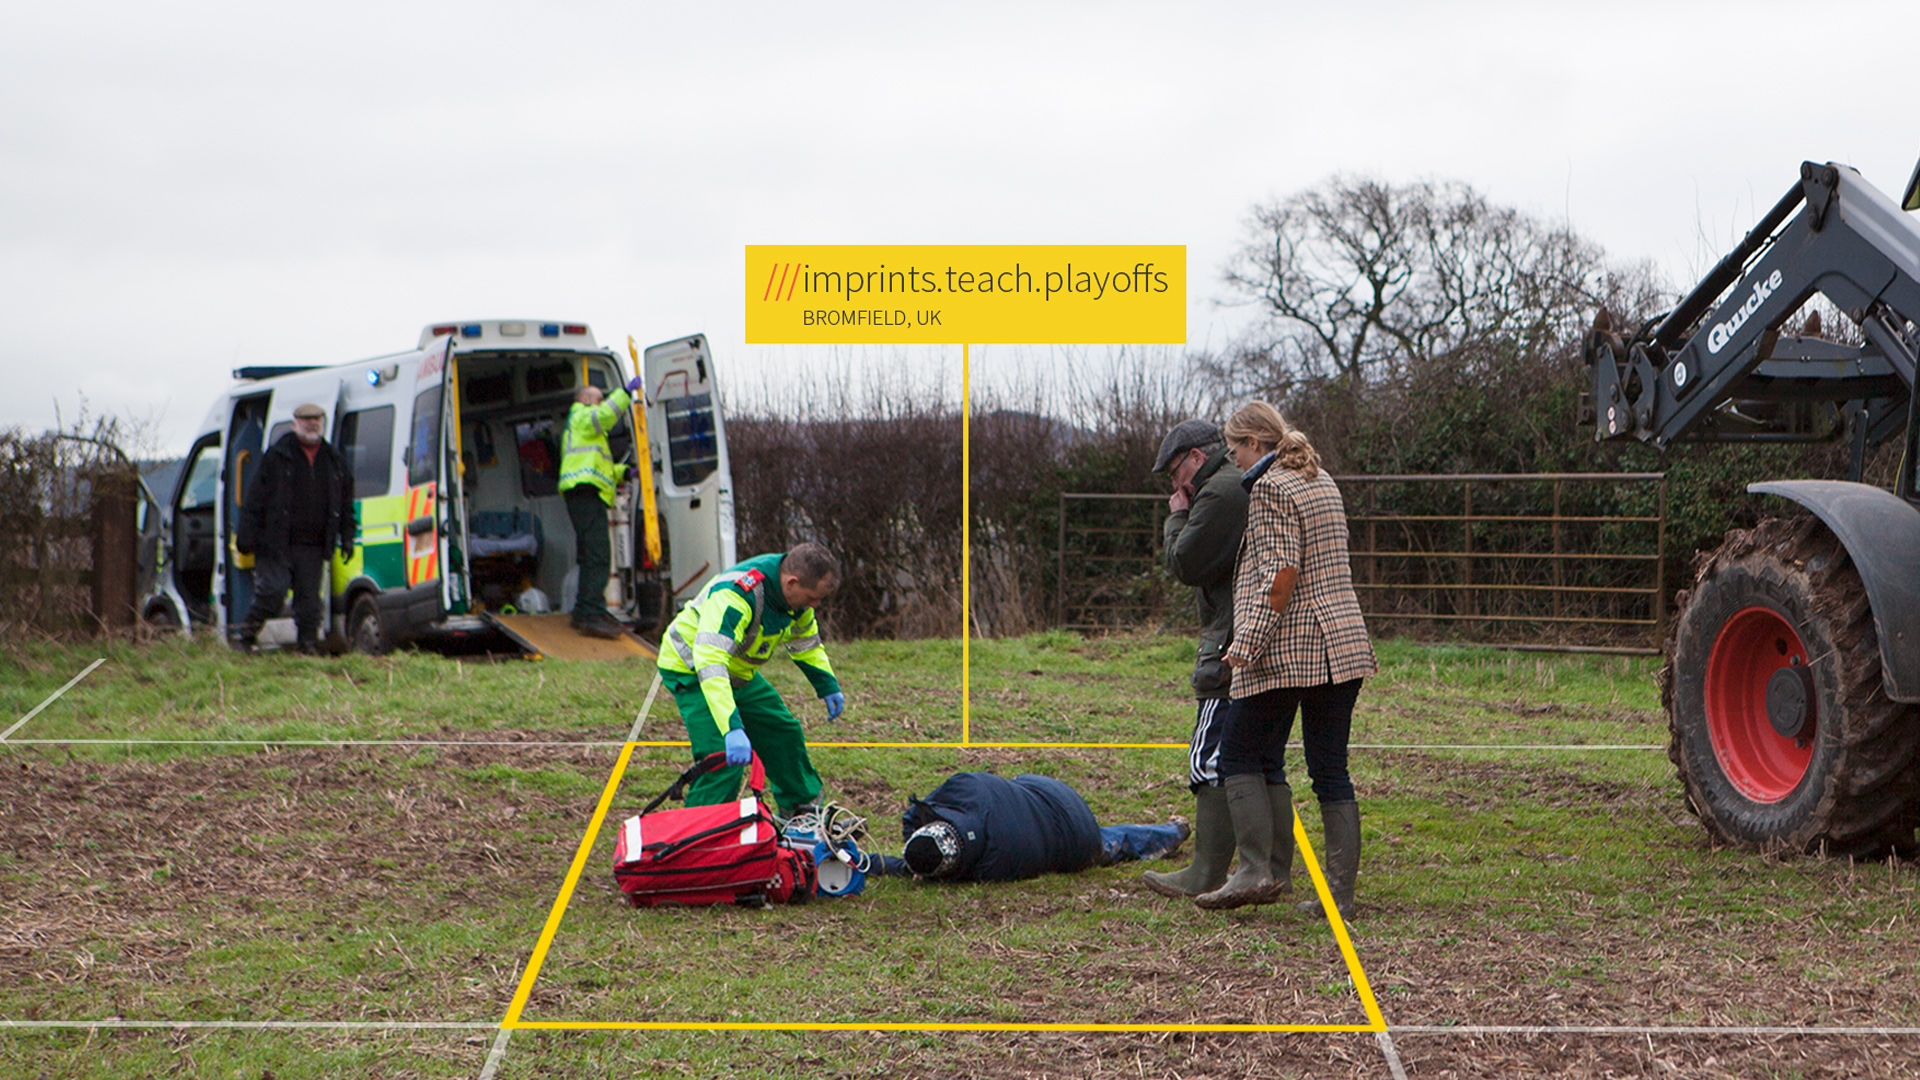 Ambulance crew helping injured man in field